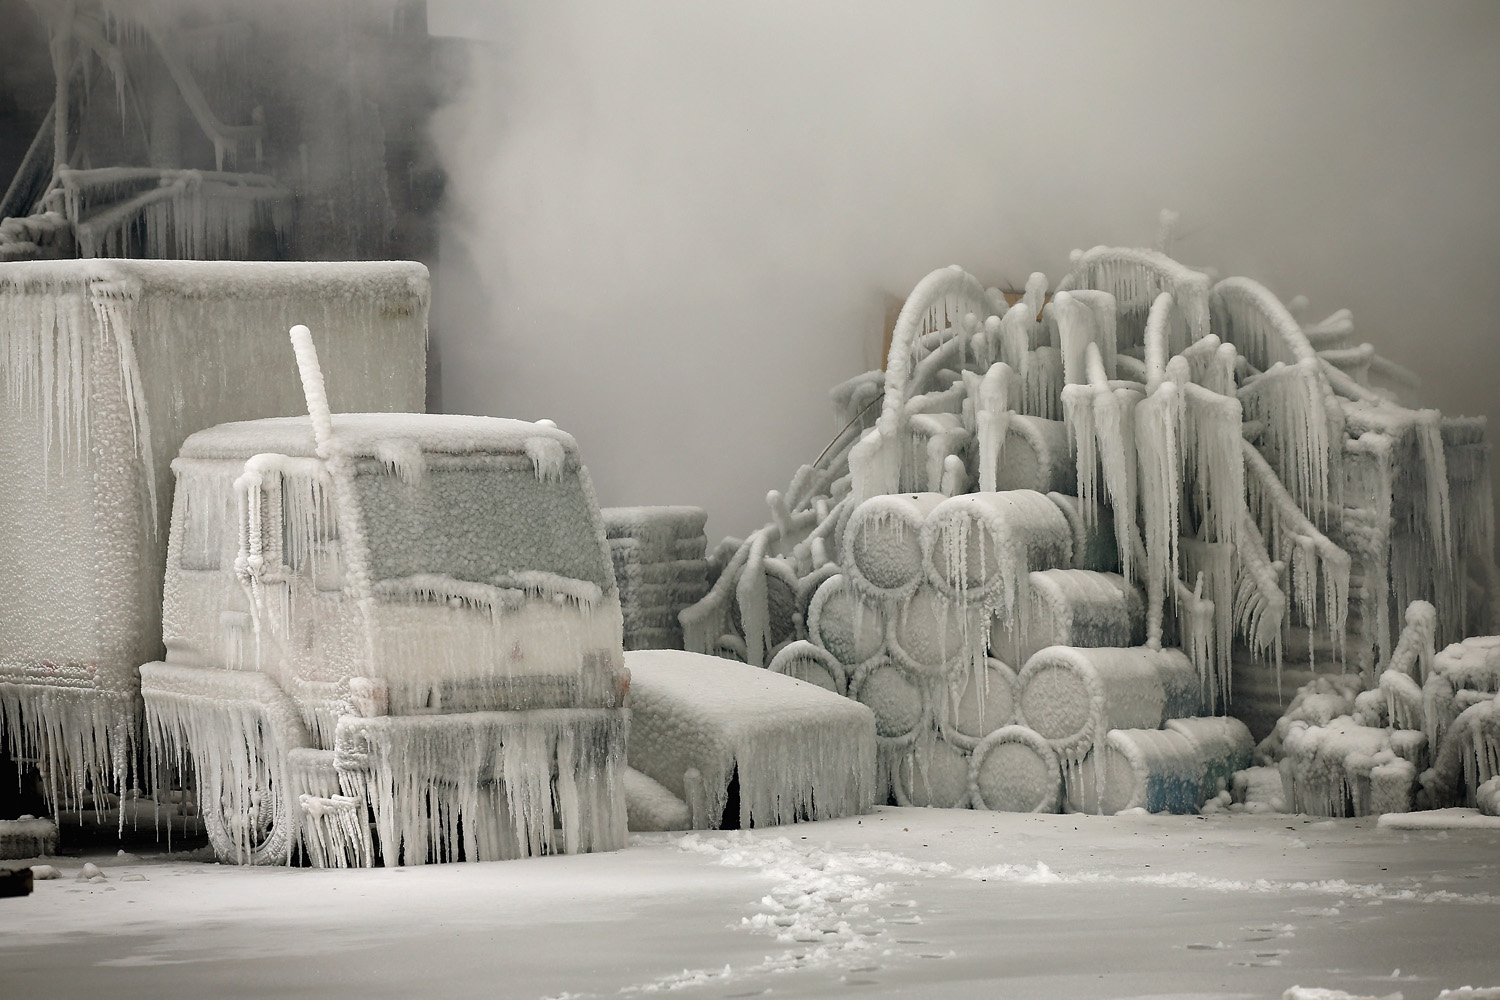 Jan. 23, 2013. A truck is covered in ice as firefighters help to extinguish a massive blaze at a vacant warehouse in Chicago, Ill.